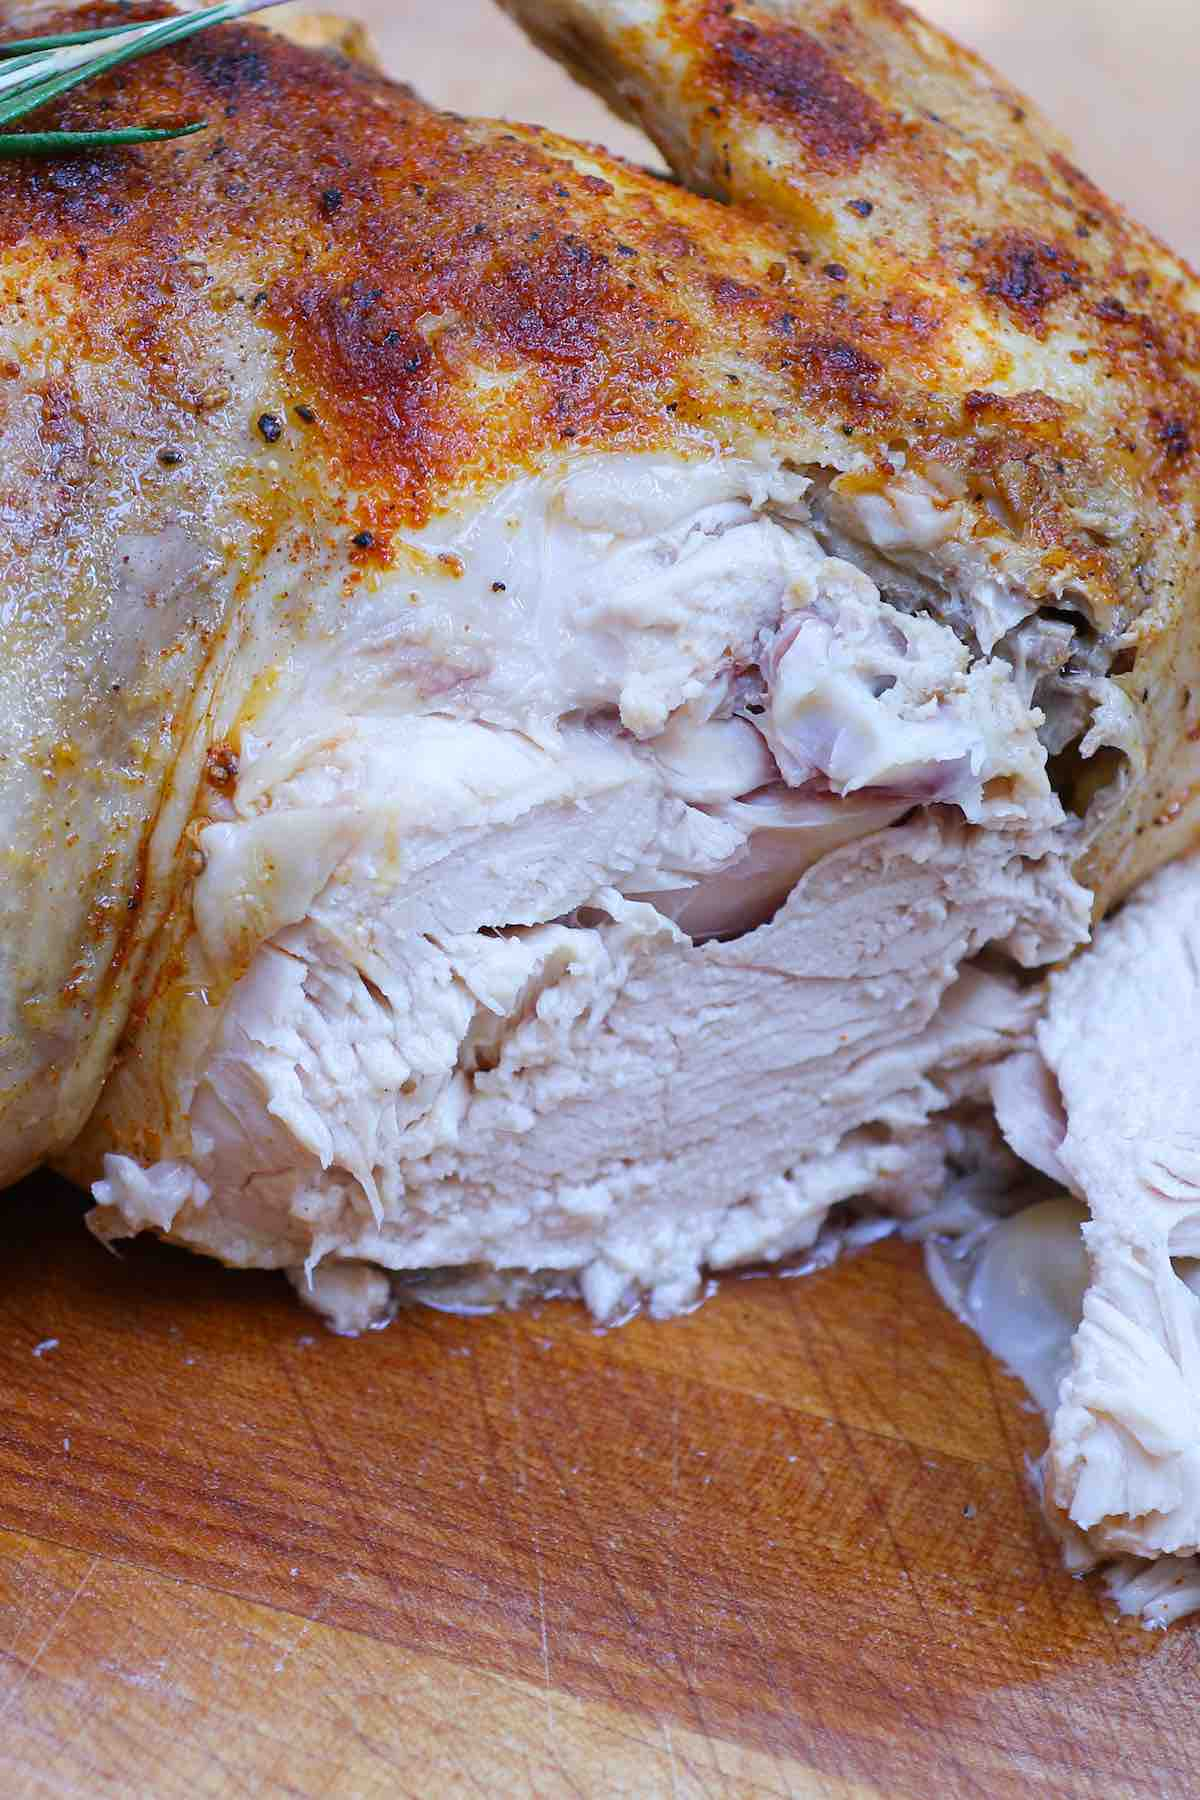 Closeup showing the tender and juicy texture.